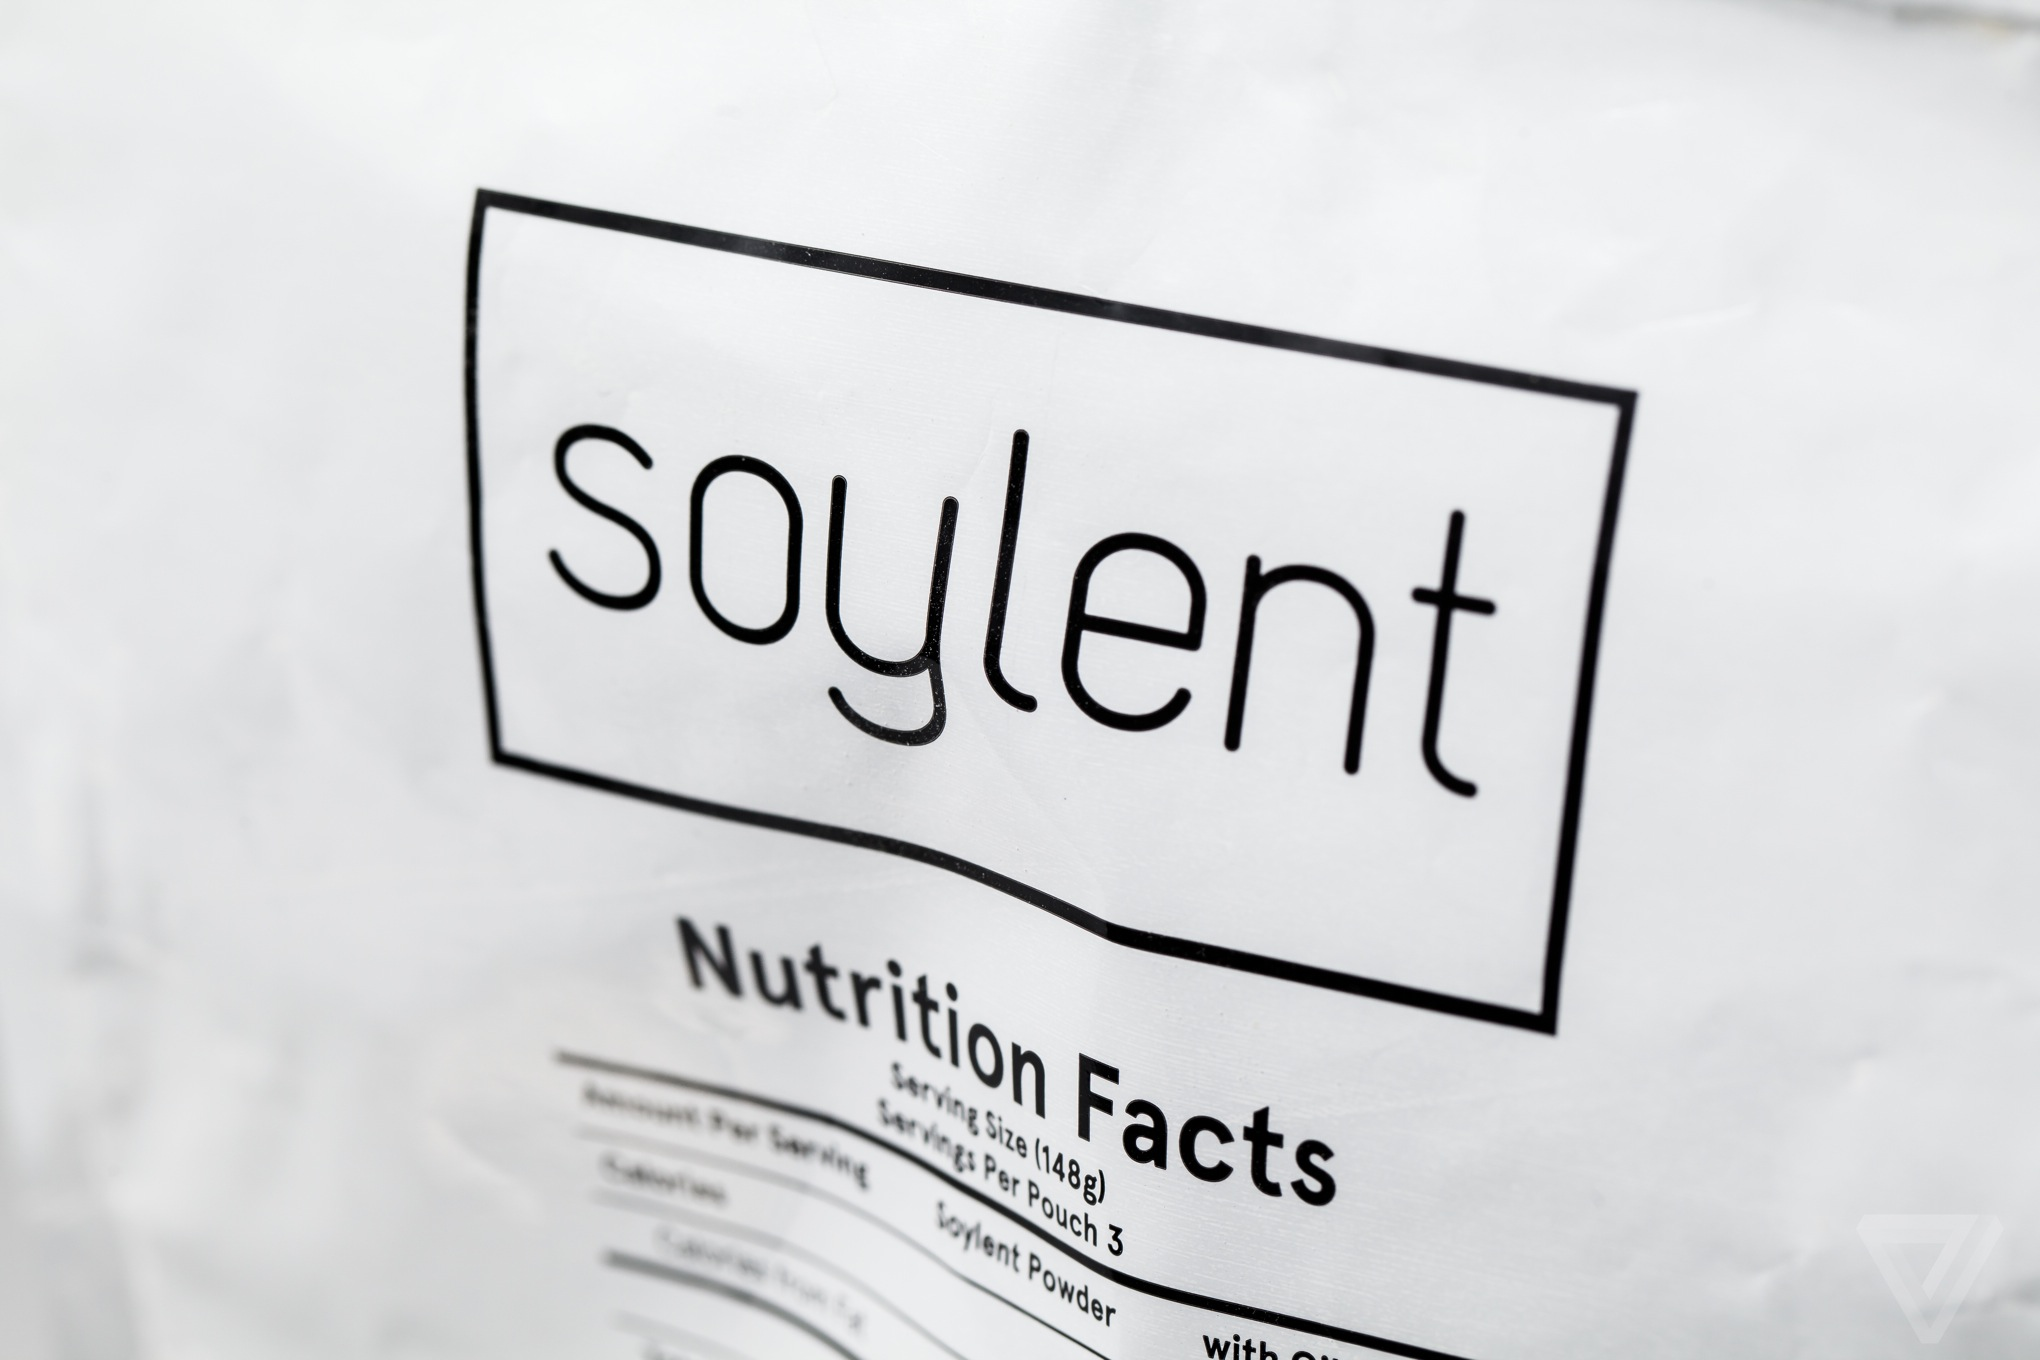 Soylent has arrived at Walmart - The Verge